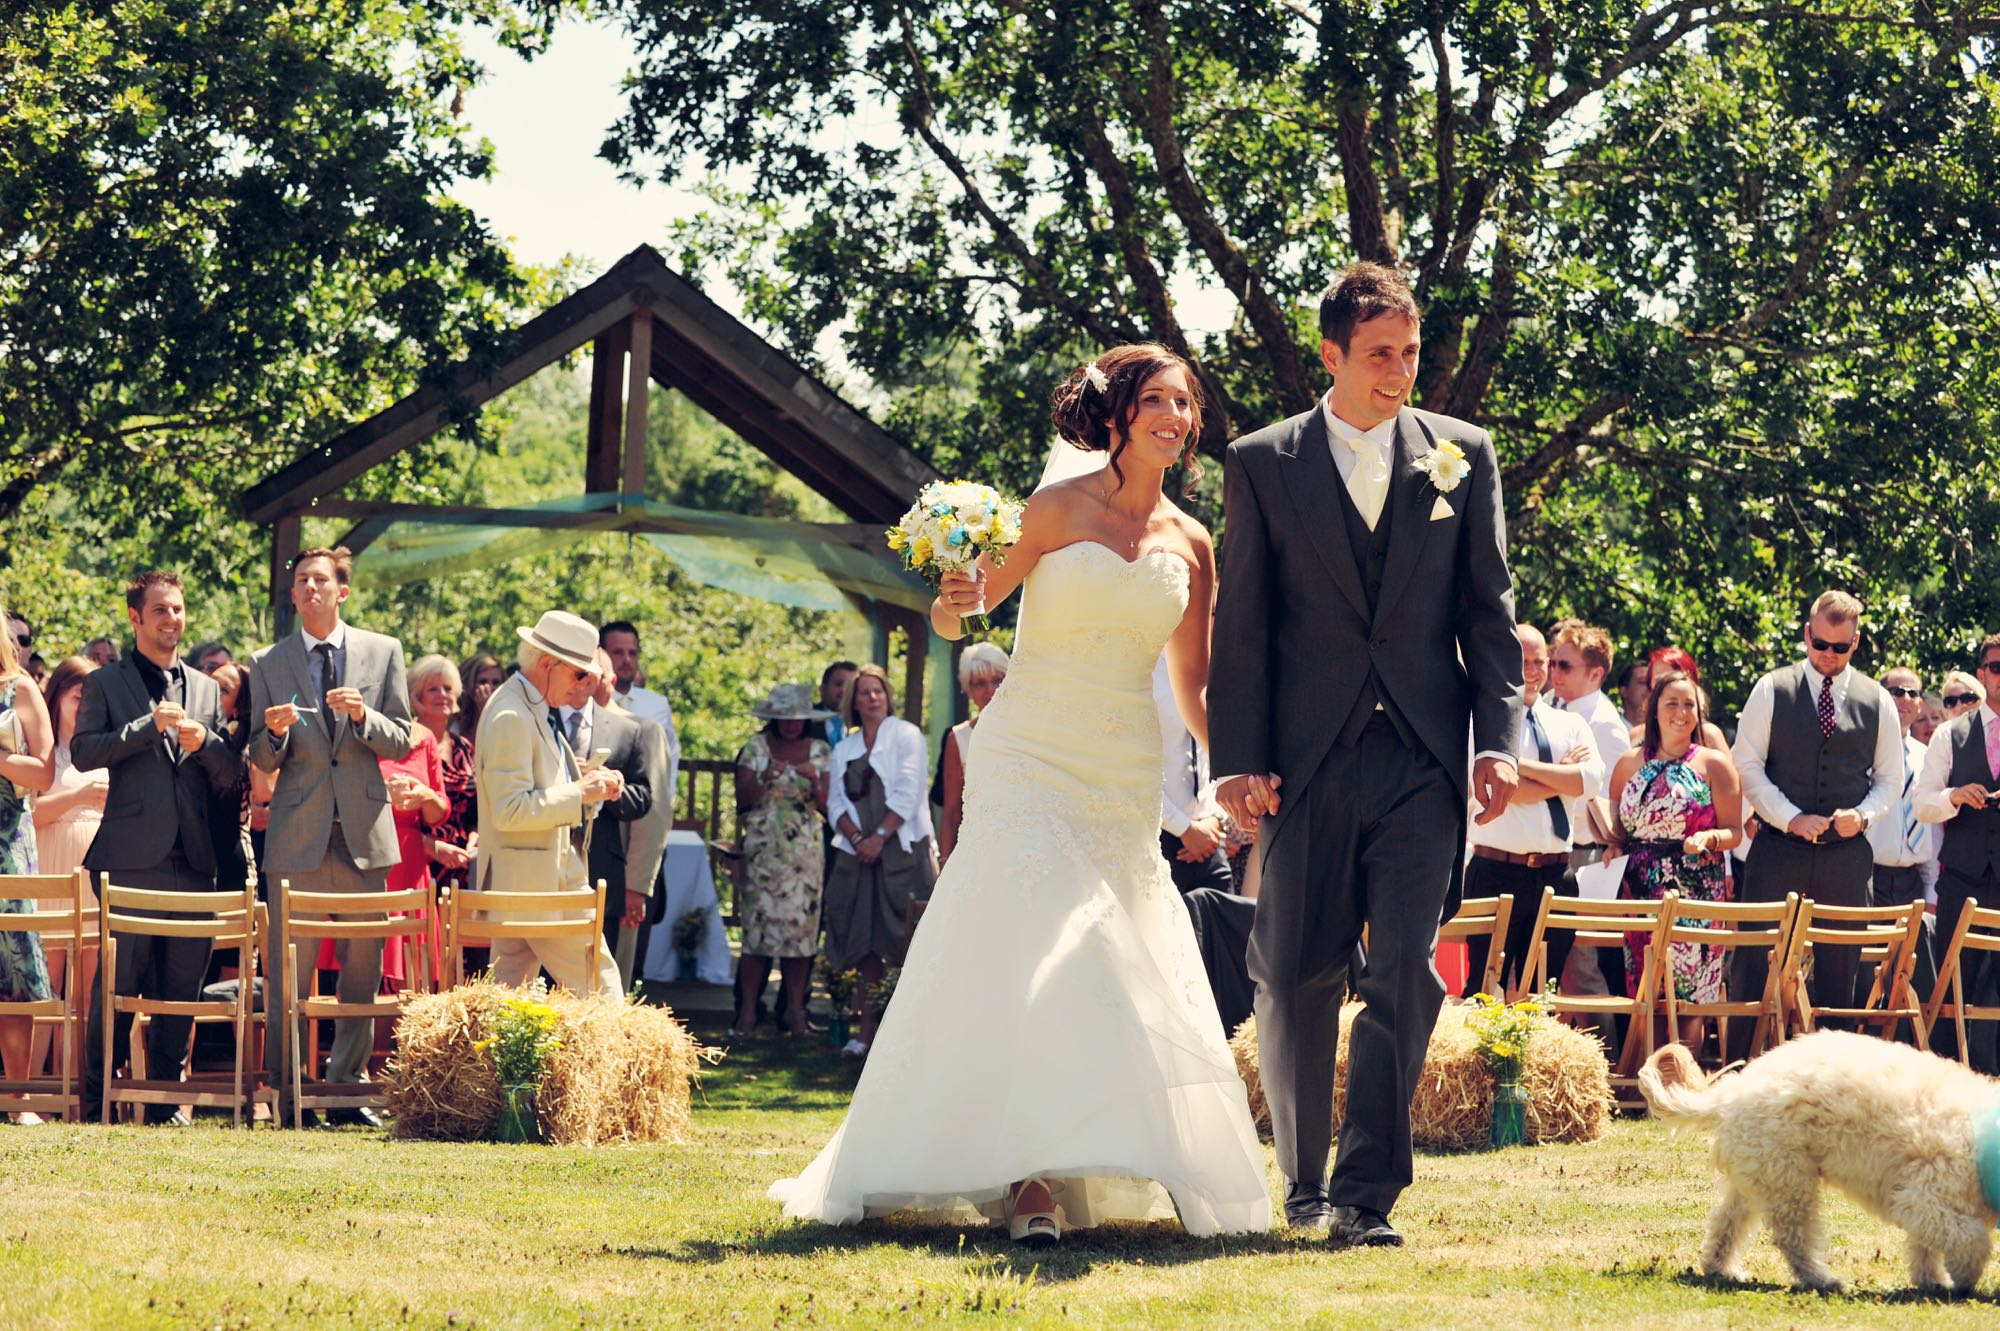 Newly weds leaving the Oak Arbour. The arbour is a wooden structure with four corner posts supporting a pitched roof. This photo shows a couple just walking away from the Oak Arbour after their ceremony. The arbour is decorated with a voile banner in tuquoise and yellow. The couple are in the middle of the shot, slightly offset to the right and the phot shows them in full length. They are holding hands and the groom is on the right, the bride on the left. Just slightly out of shot is the couples dog (you can't see his head). It is a summers day and the trees are in full leaf and the grass is parched. The bride is wearing an ivory, a-line, strapless dress. She has dark hair she is wearing up with a clip. In her right hand she is holding a bouquet of turquiose and yellow flowers. The groom is wearing a gray morning suit with white shirt tie. The couple are holding hands, smiling and looking forward and slightly to their left. You can see some guests in the background. The guests are looking at the couple and have their backs to the arbour. There are rows of chairs set out in front of the arbour with haybales at the end of the back rows. The guests are standing. You can seee the registrar standing by a clothed table under the arbour in the background.